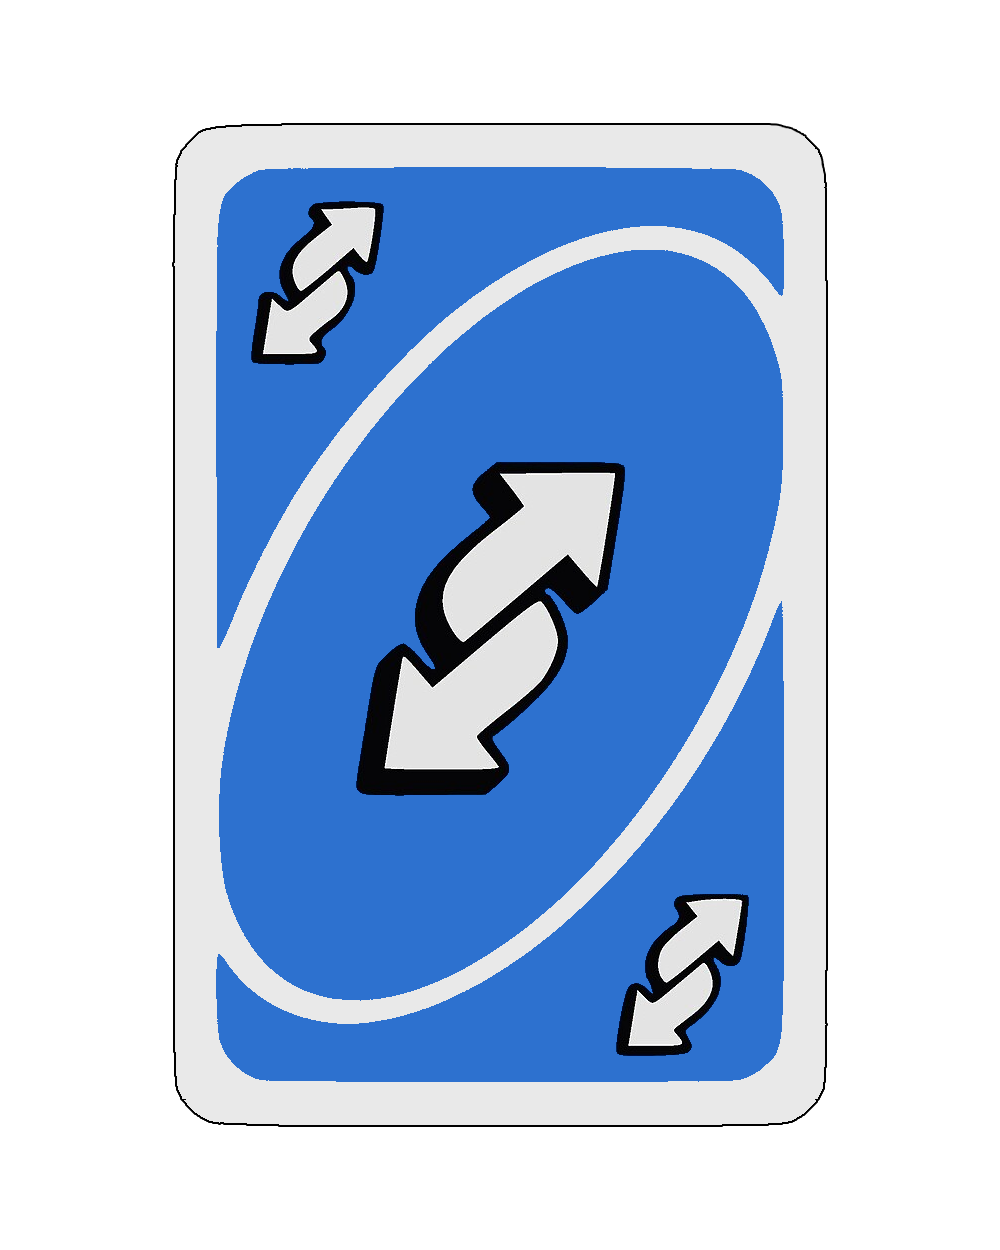 Light Blue Uno Reverse Card Sticker By Kaykiser In 2021 Print Stickers Uno Cards Sticker Collection